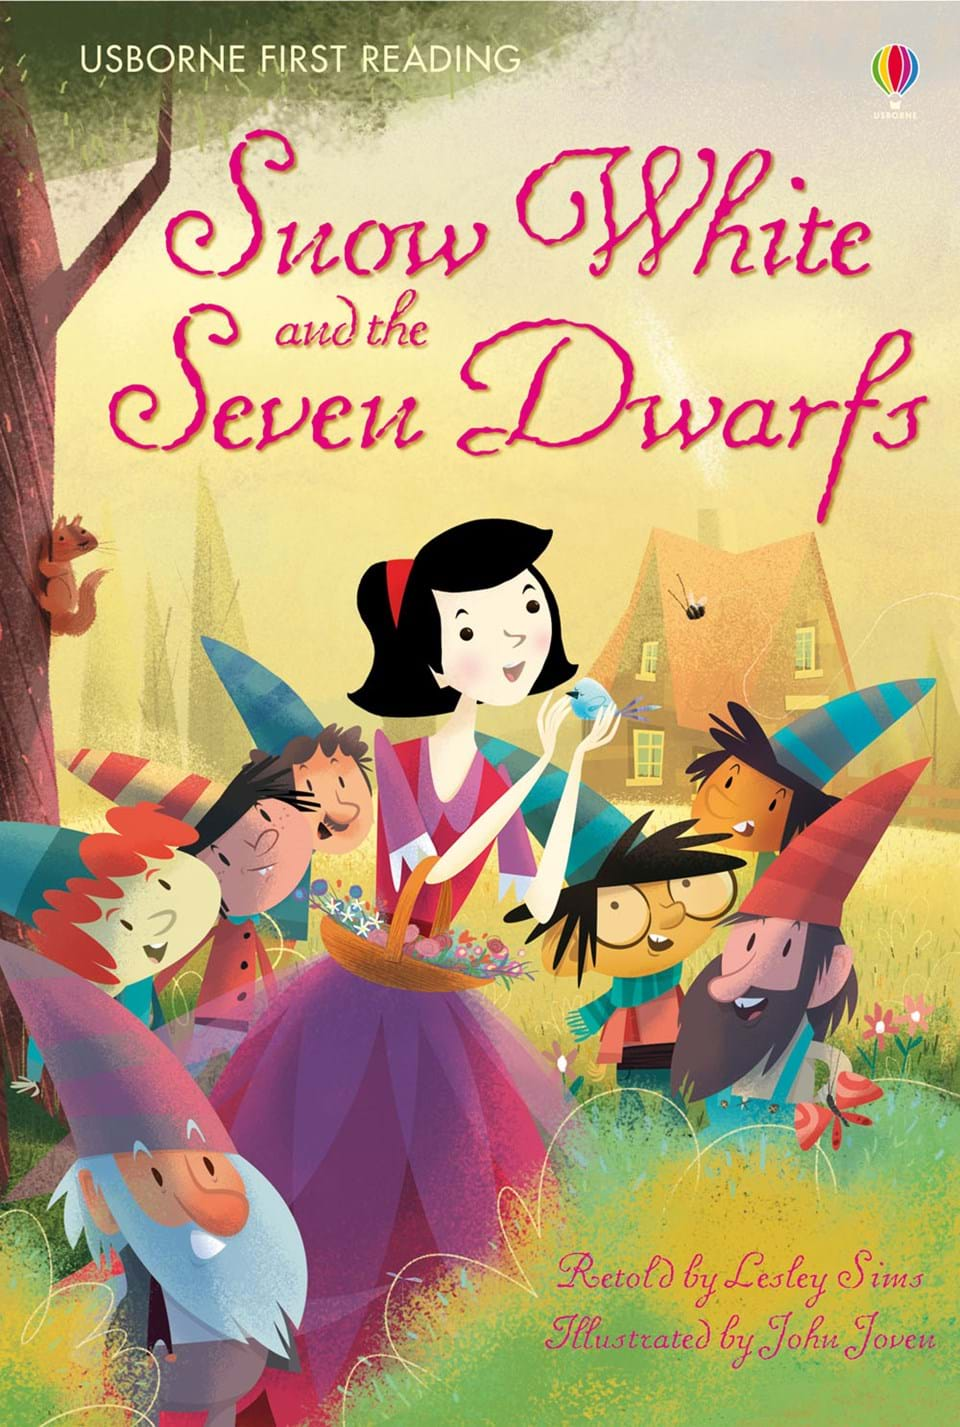 """Book Cover Of Snow White ~ """"snow white and the seven dwarfs at usborne books home"""